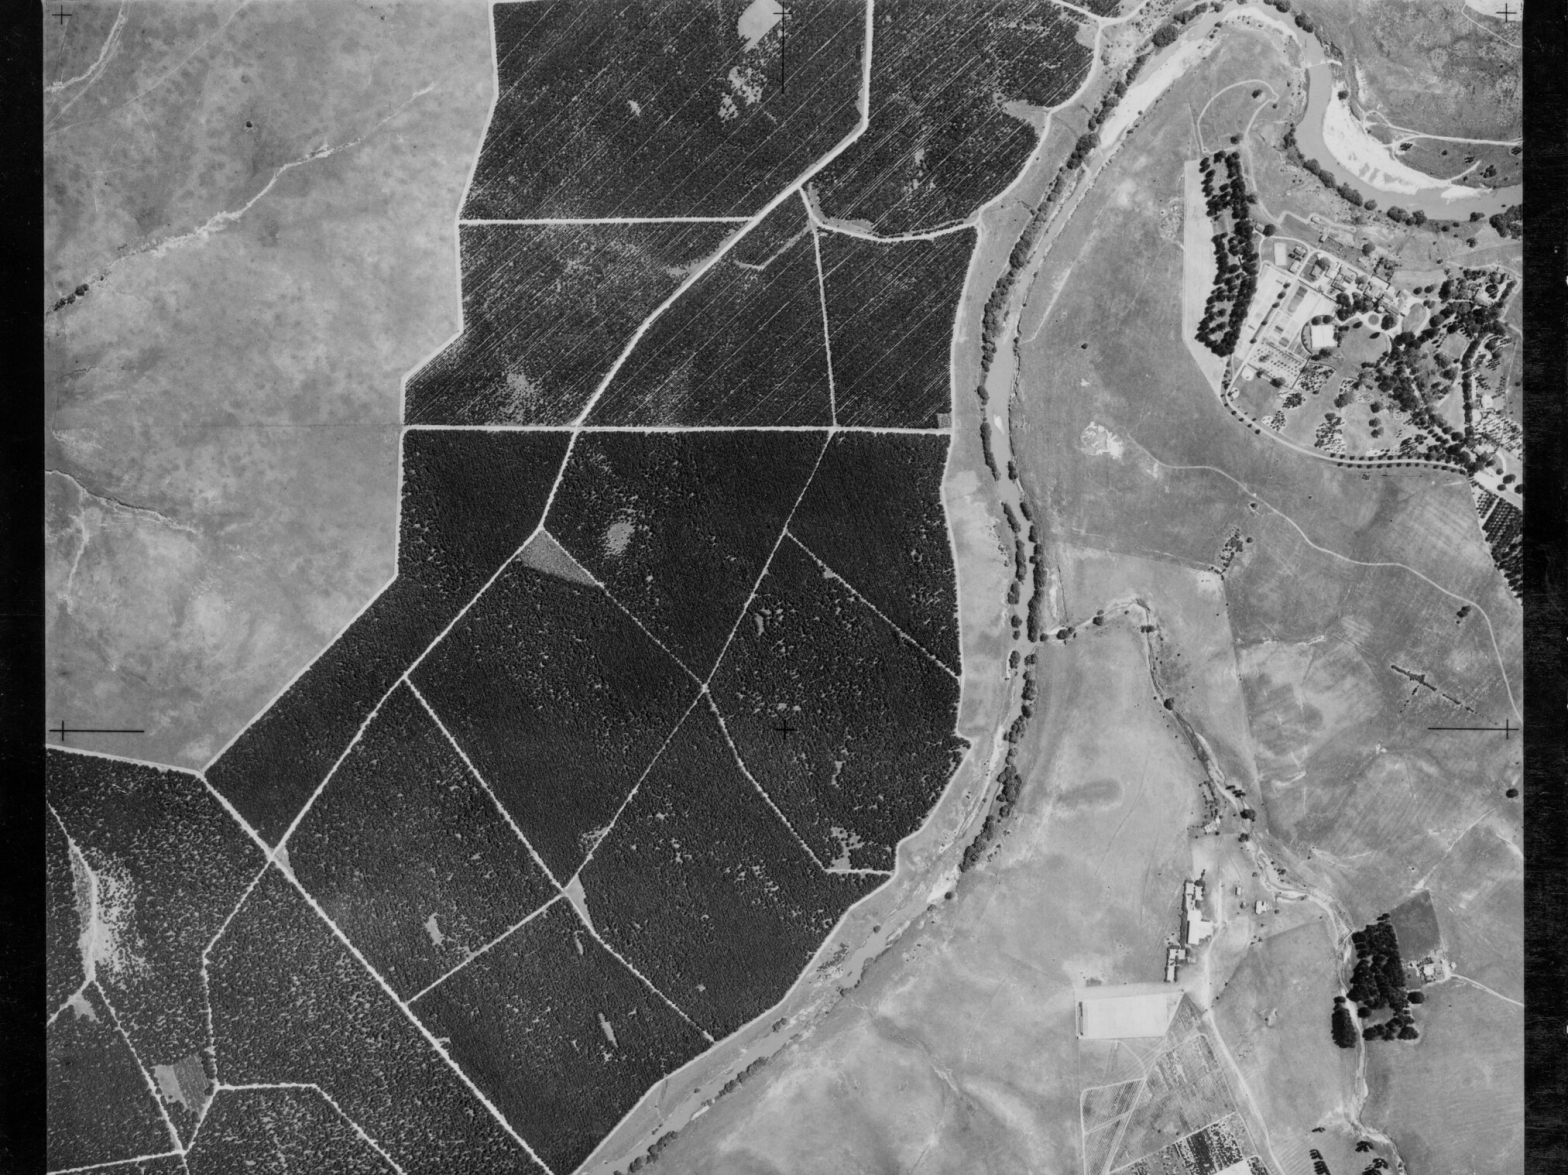 Below Scrivener Dam, Aerial photo of Molonglo River, Canberra - 07121955 L. ACT Archives, Flickr.com (CC BY-NC 2.0)